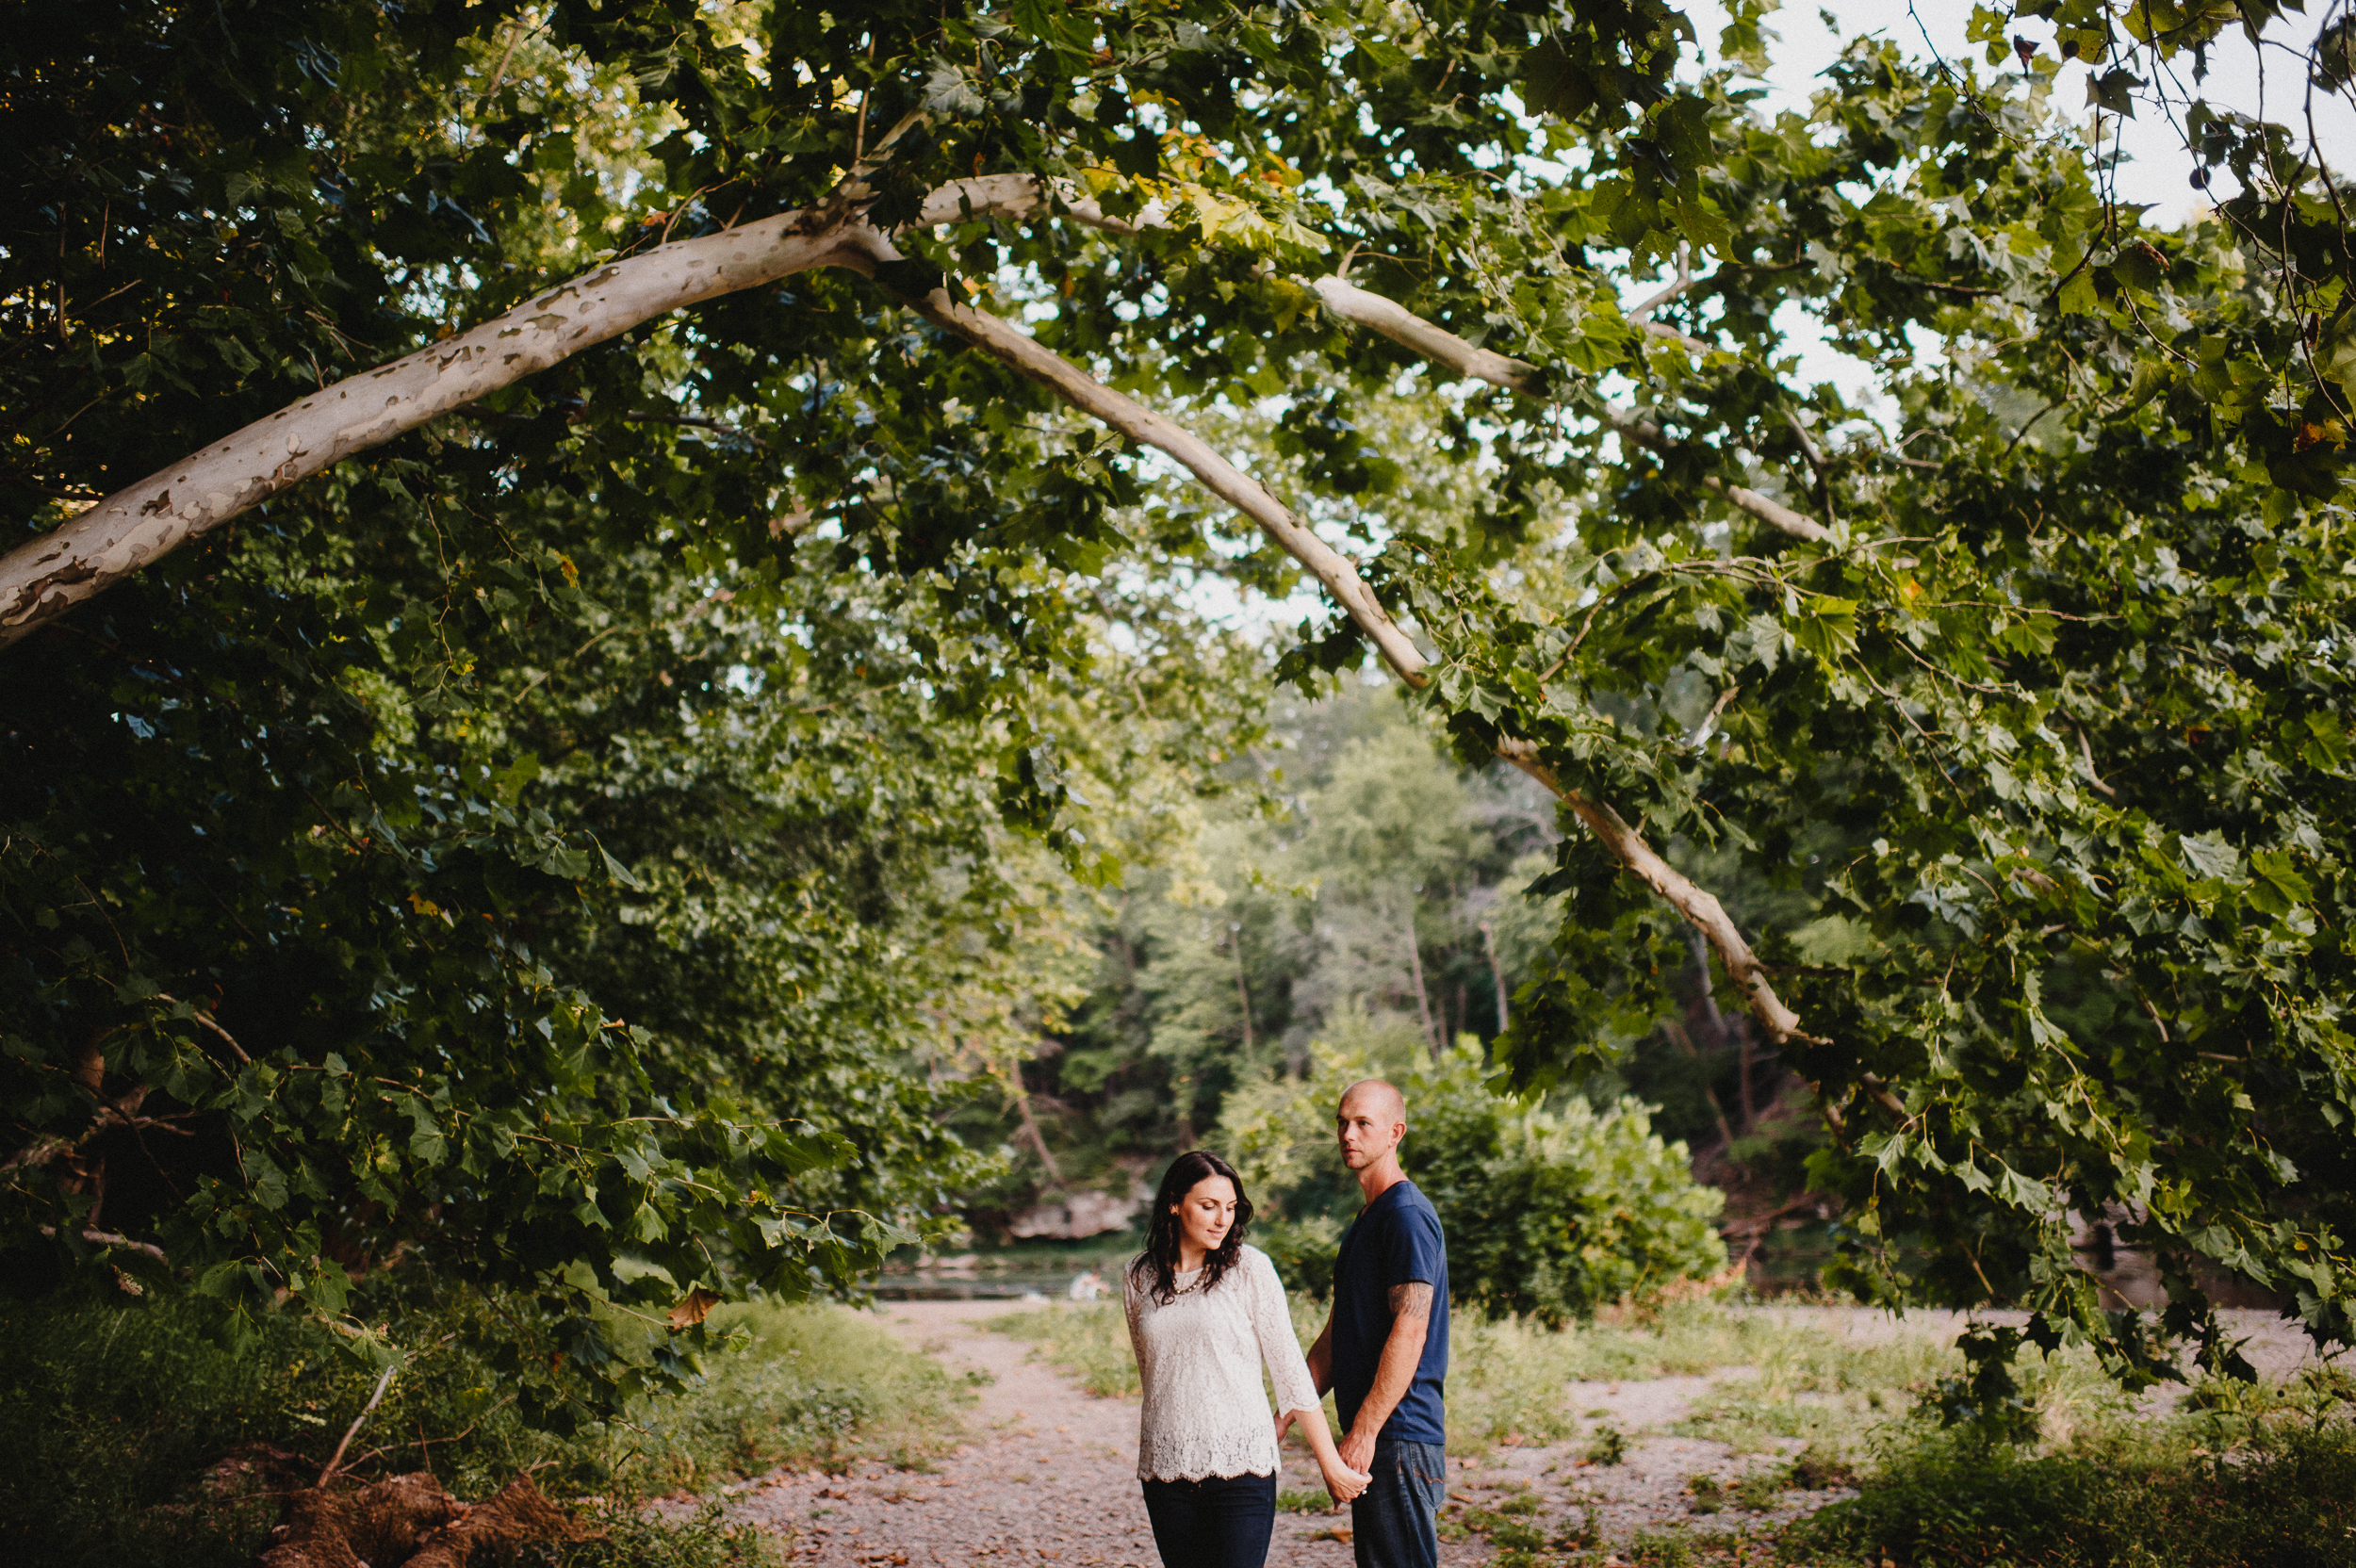 pat-robinson-photography-pa-engagement-session-13.jpg